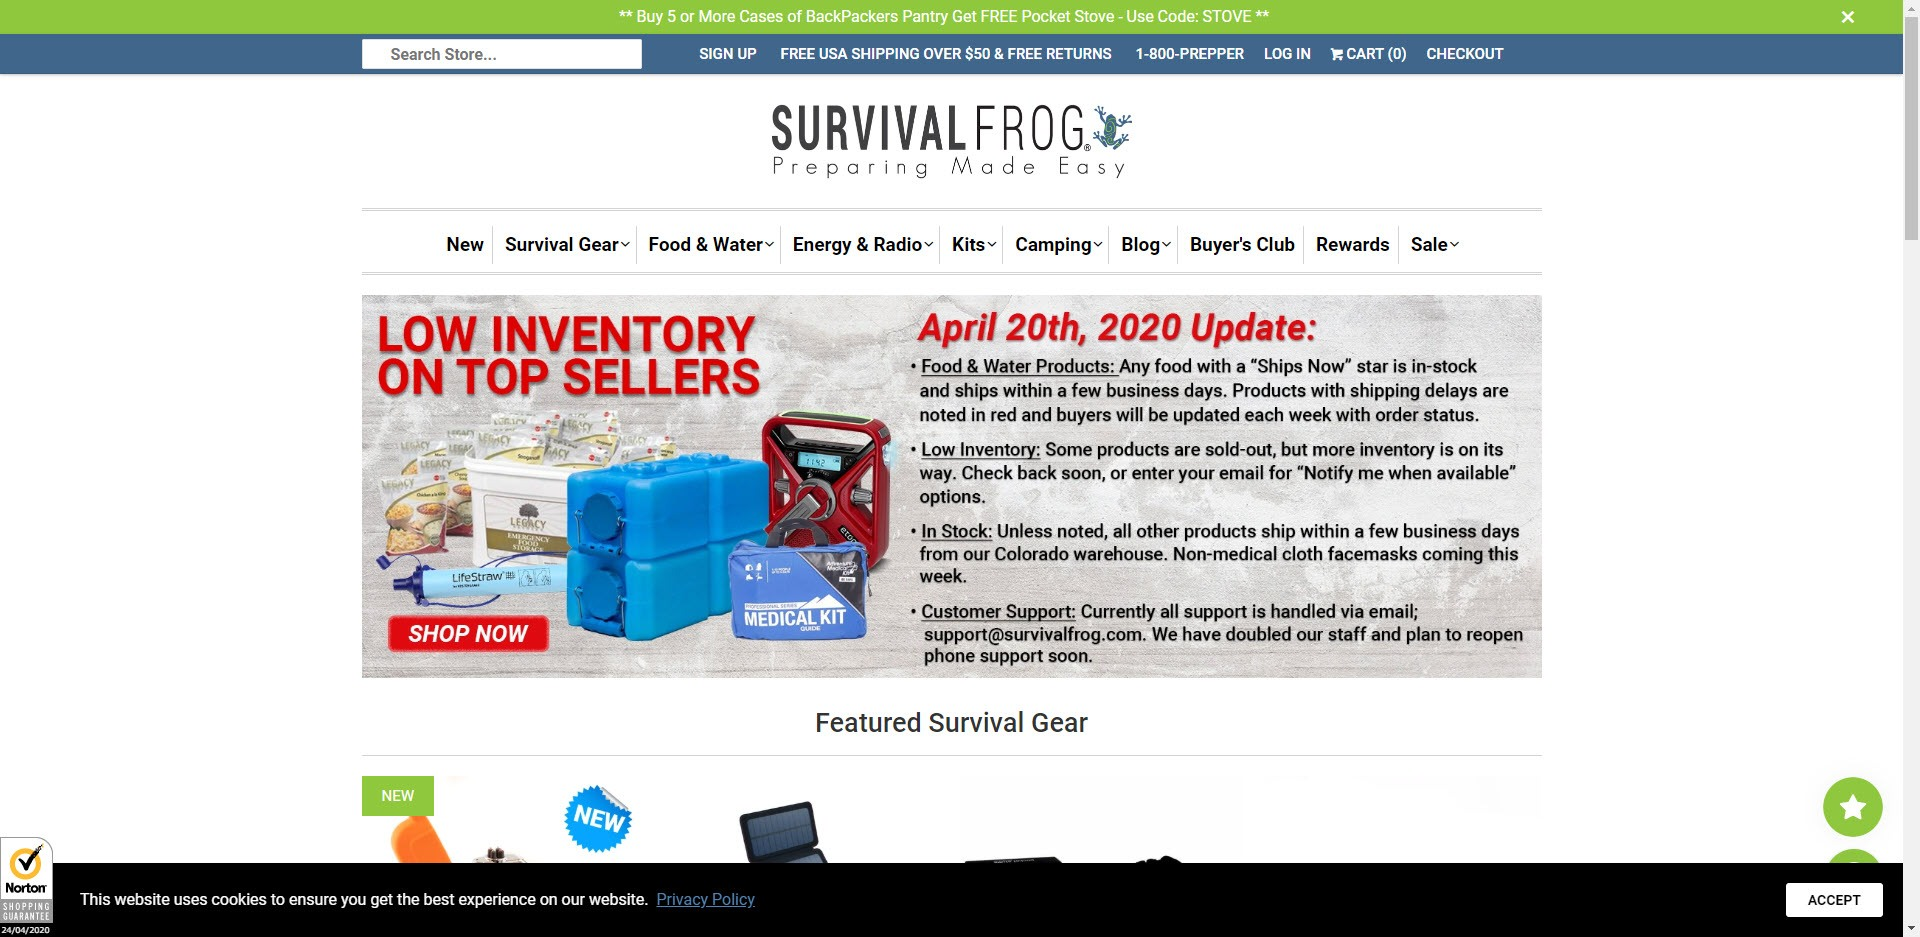 Survival Affiliate Programs - Survival Frog